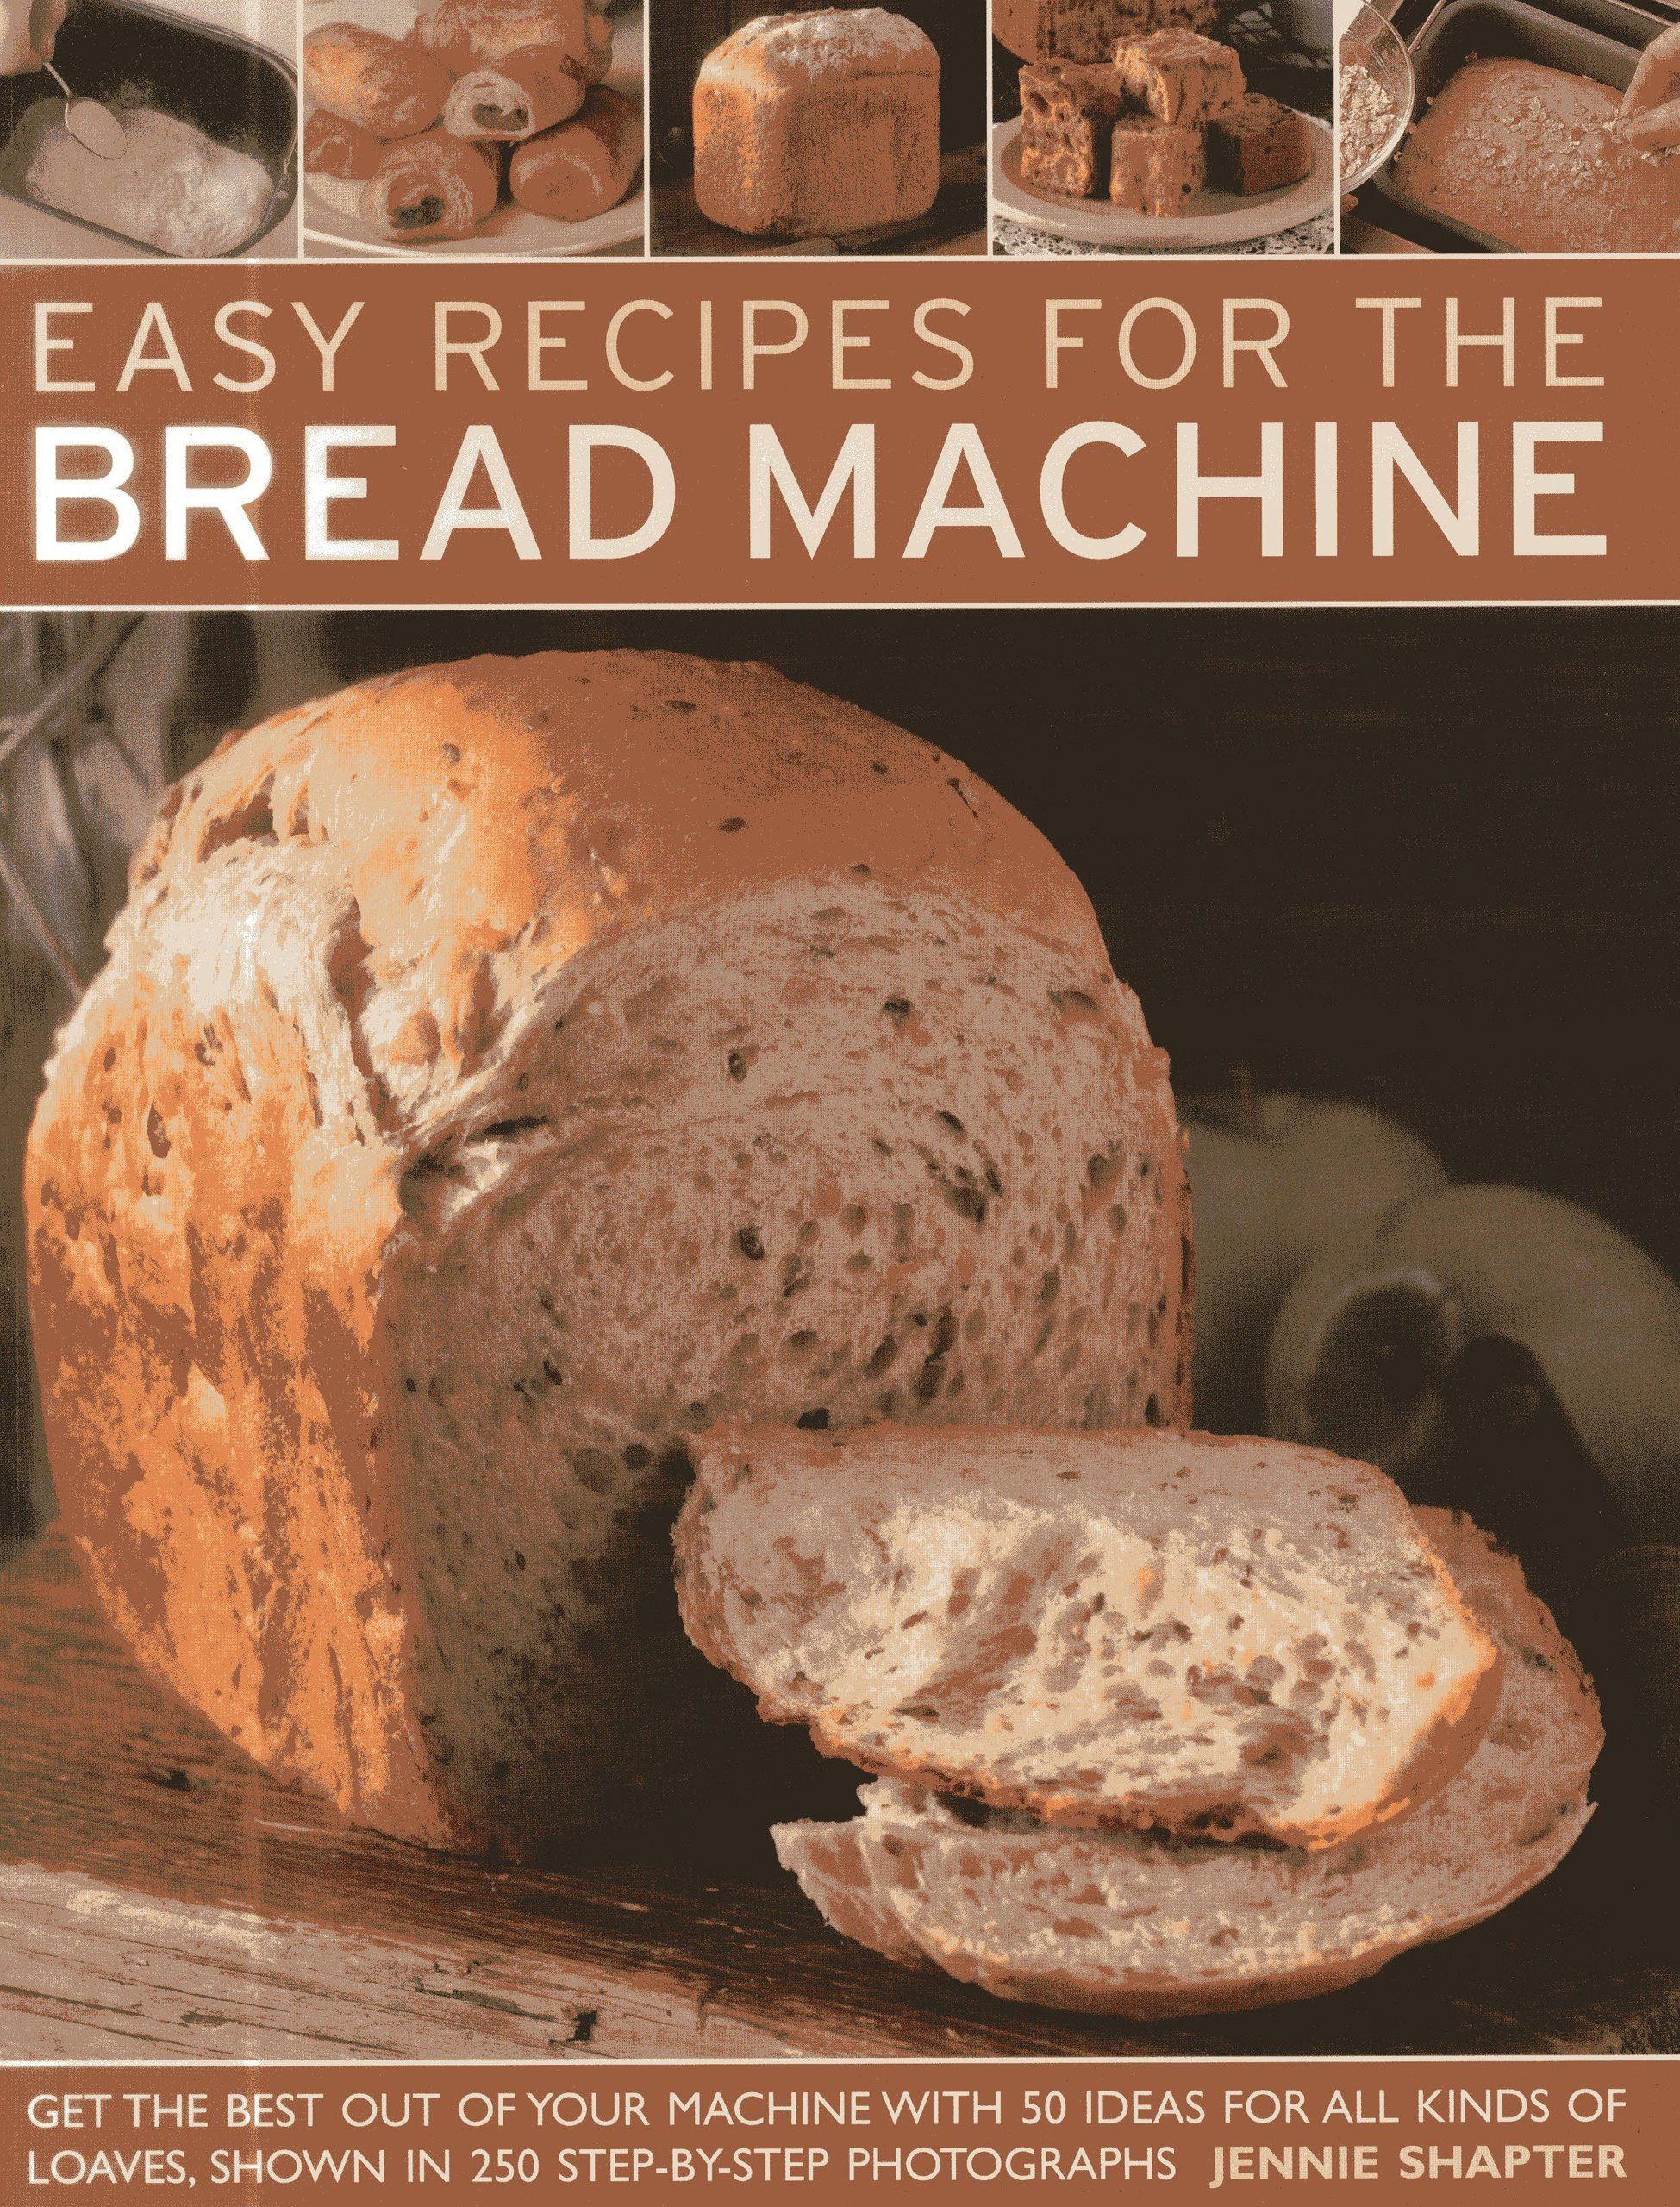 Easy Recipes for the Bread Machine: Get the Best Out of Your Bread Machine with 50 Ideas for all Kinds of Loaves, Shown in 250 Step-by-Step Photographs Paperback – January 7, 2014 Jennie Shapter Southwater 178019269X Cookery